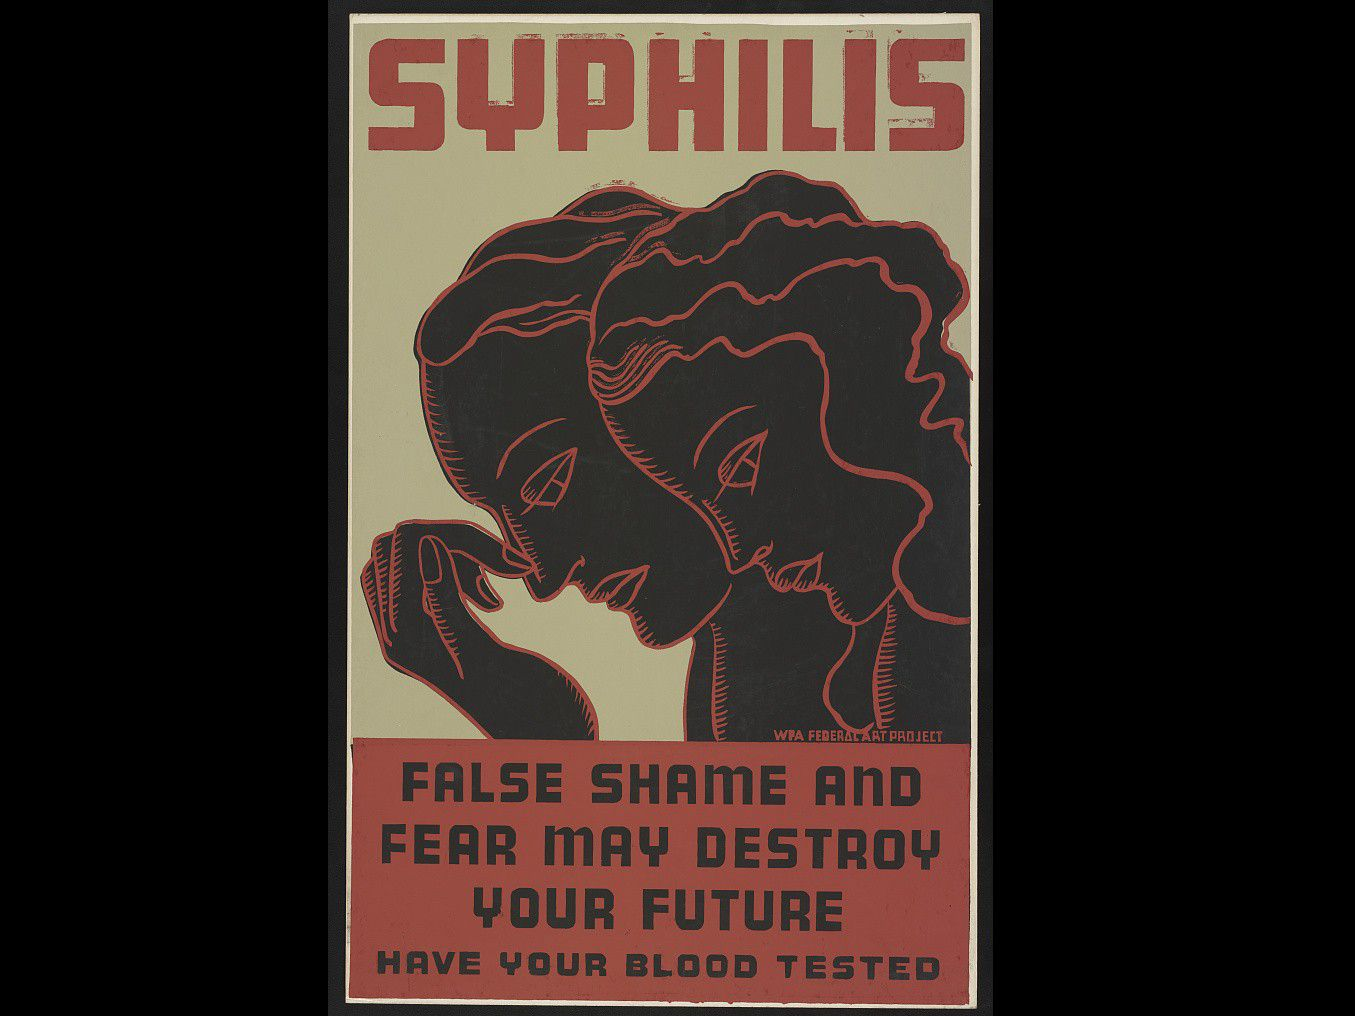 Why are syphilis cases surging?